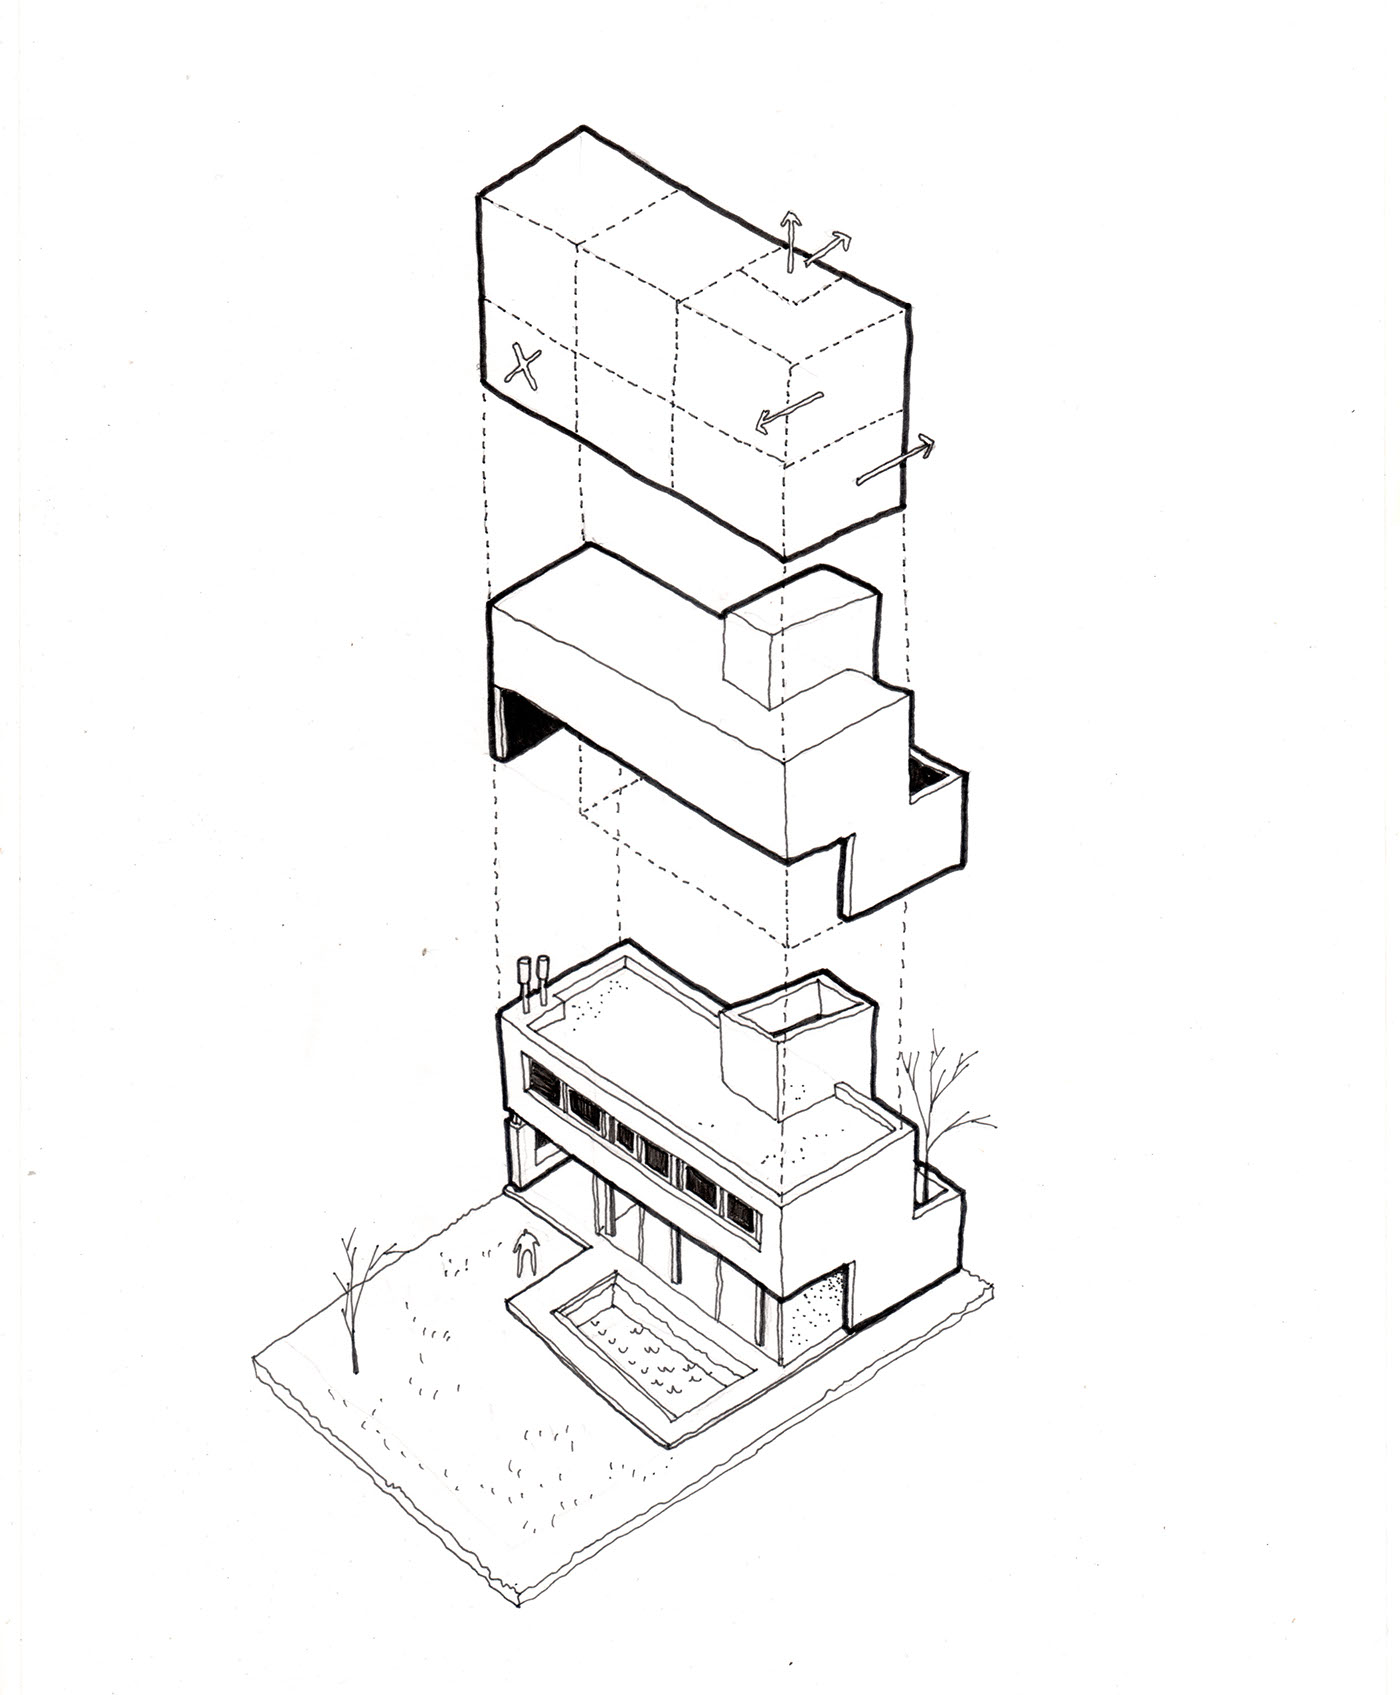 Architectural Drawing on Behance